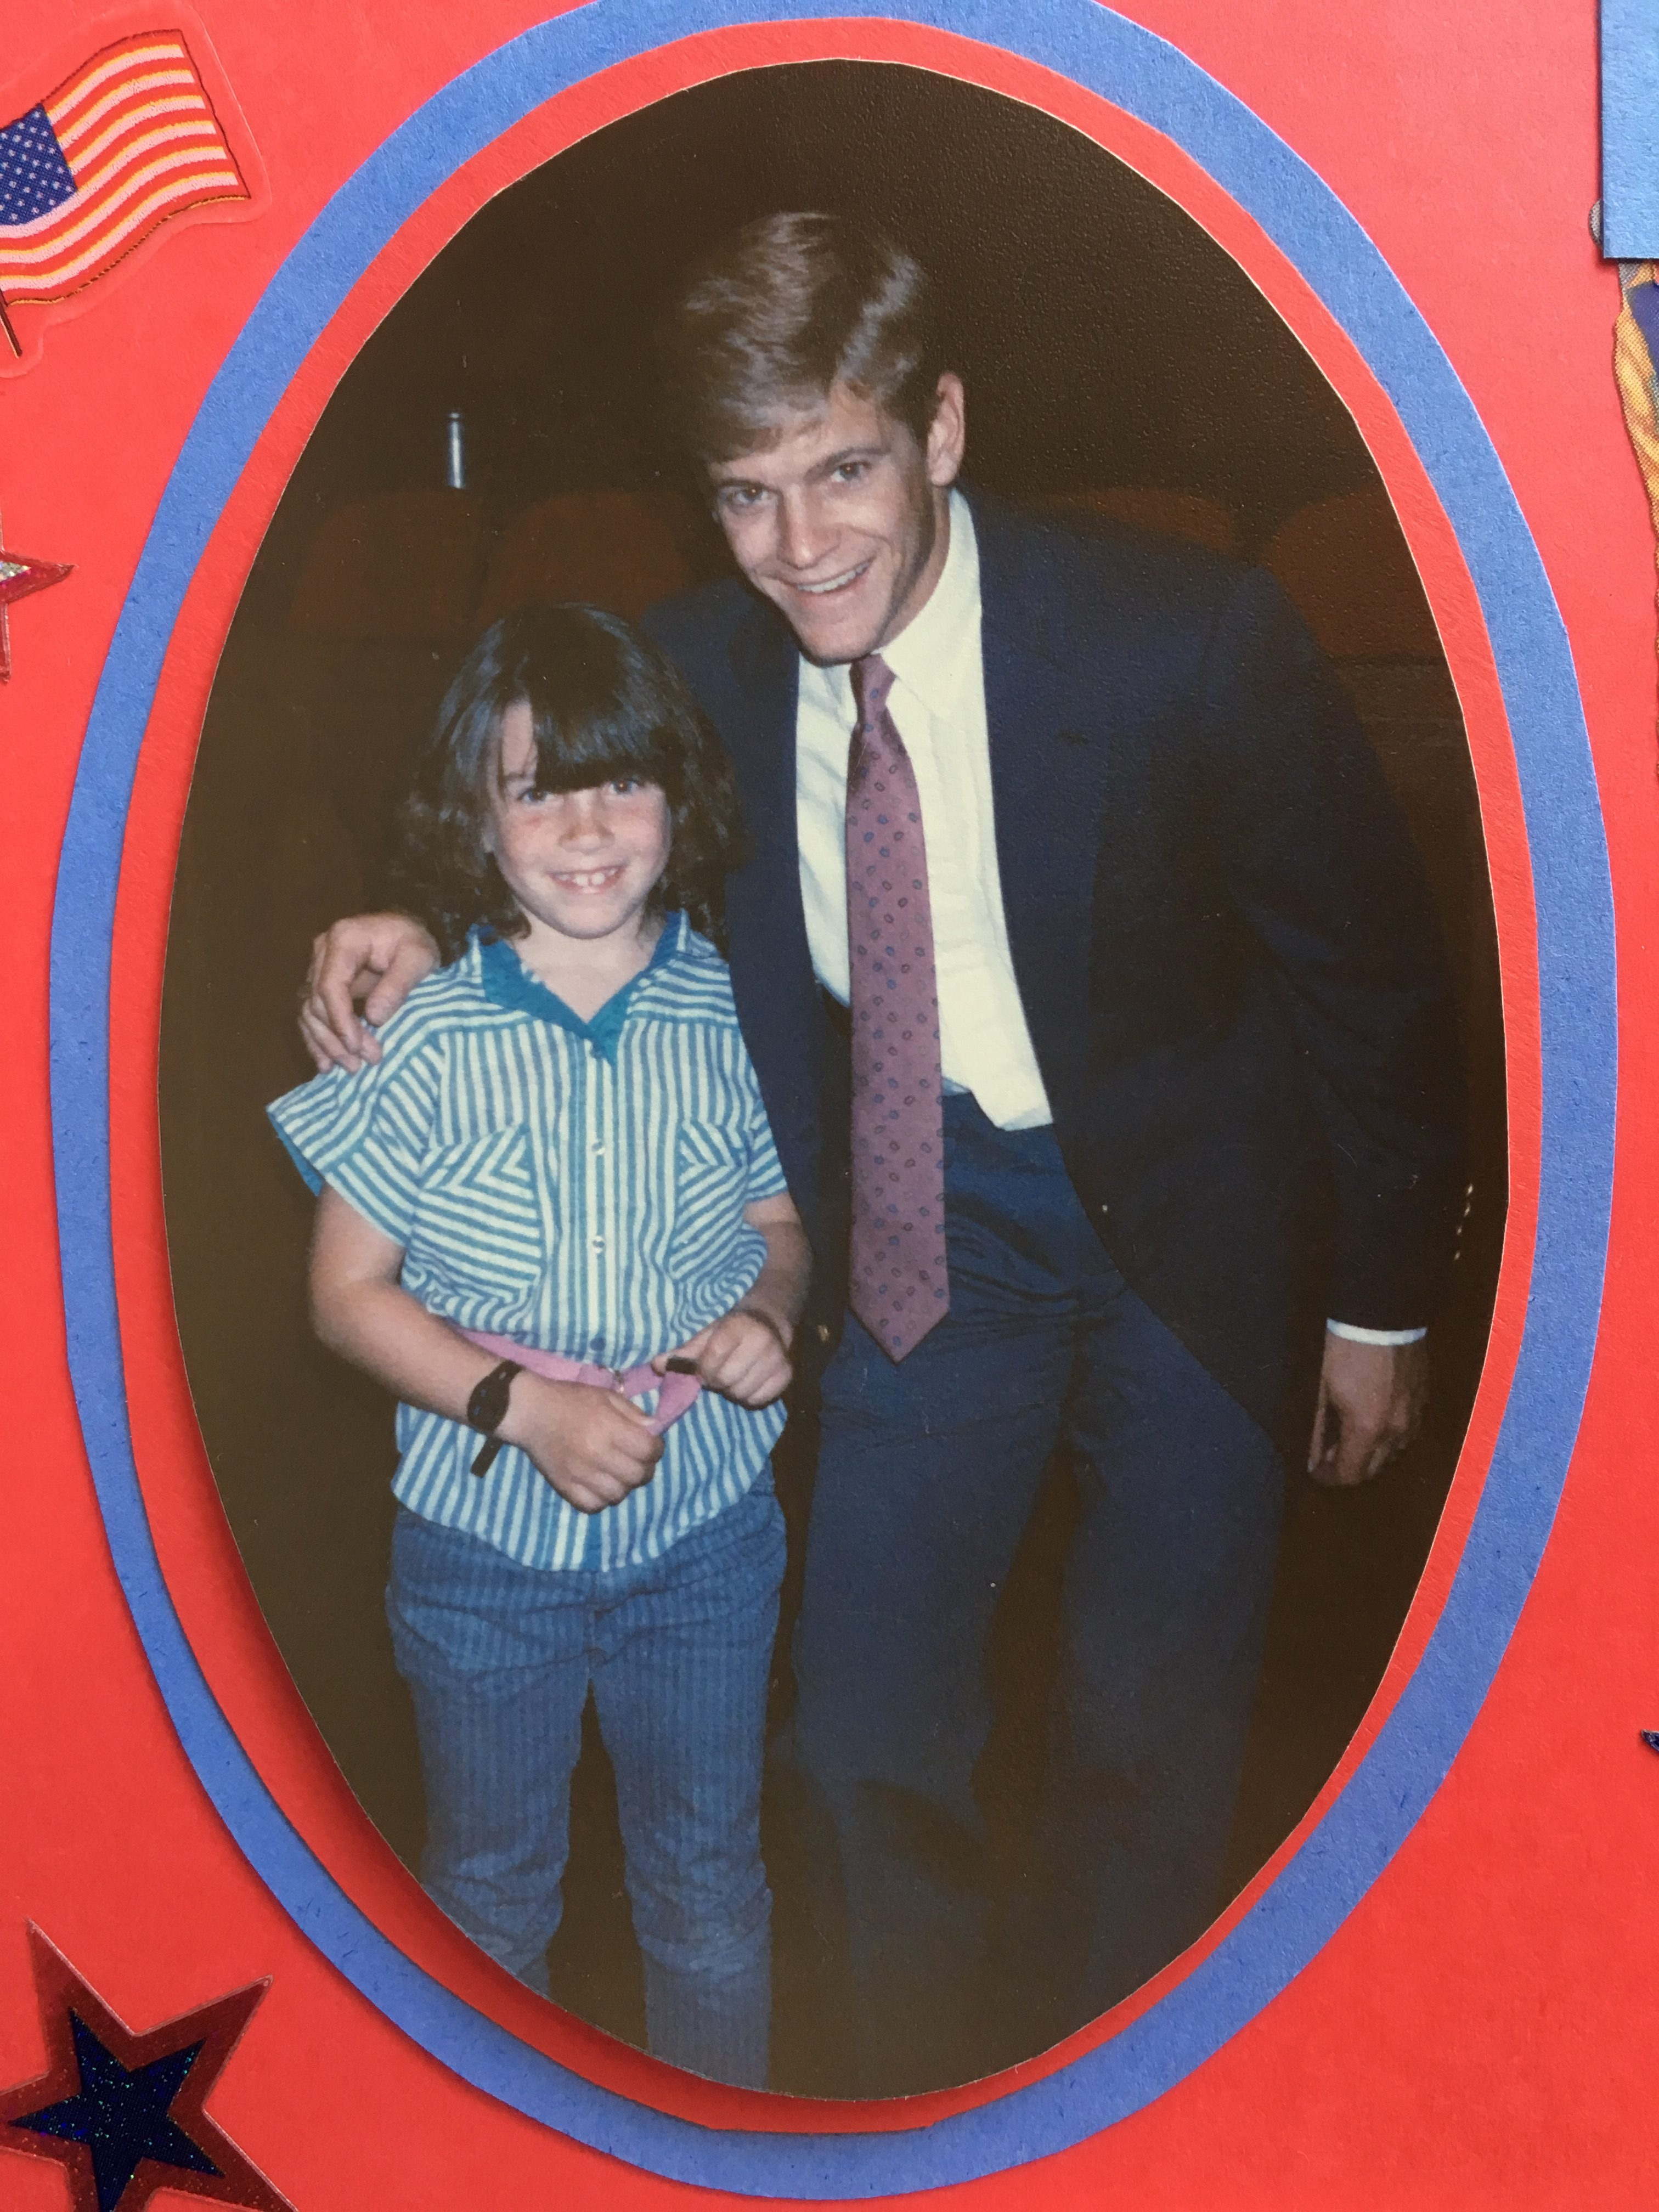 Kat, age 8, with 1984 Olympic Gold Medal Gymnast Peter Vidmar. Santa Barbara, California. 1985 | Photo courtesy of Kat Dayton, St. George News